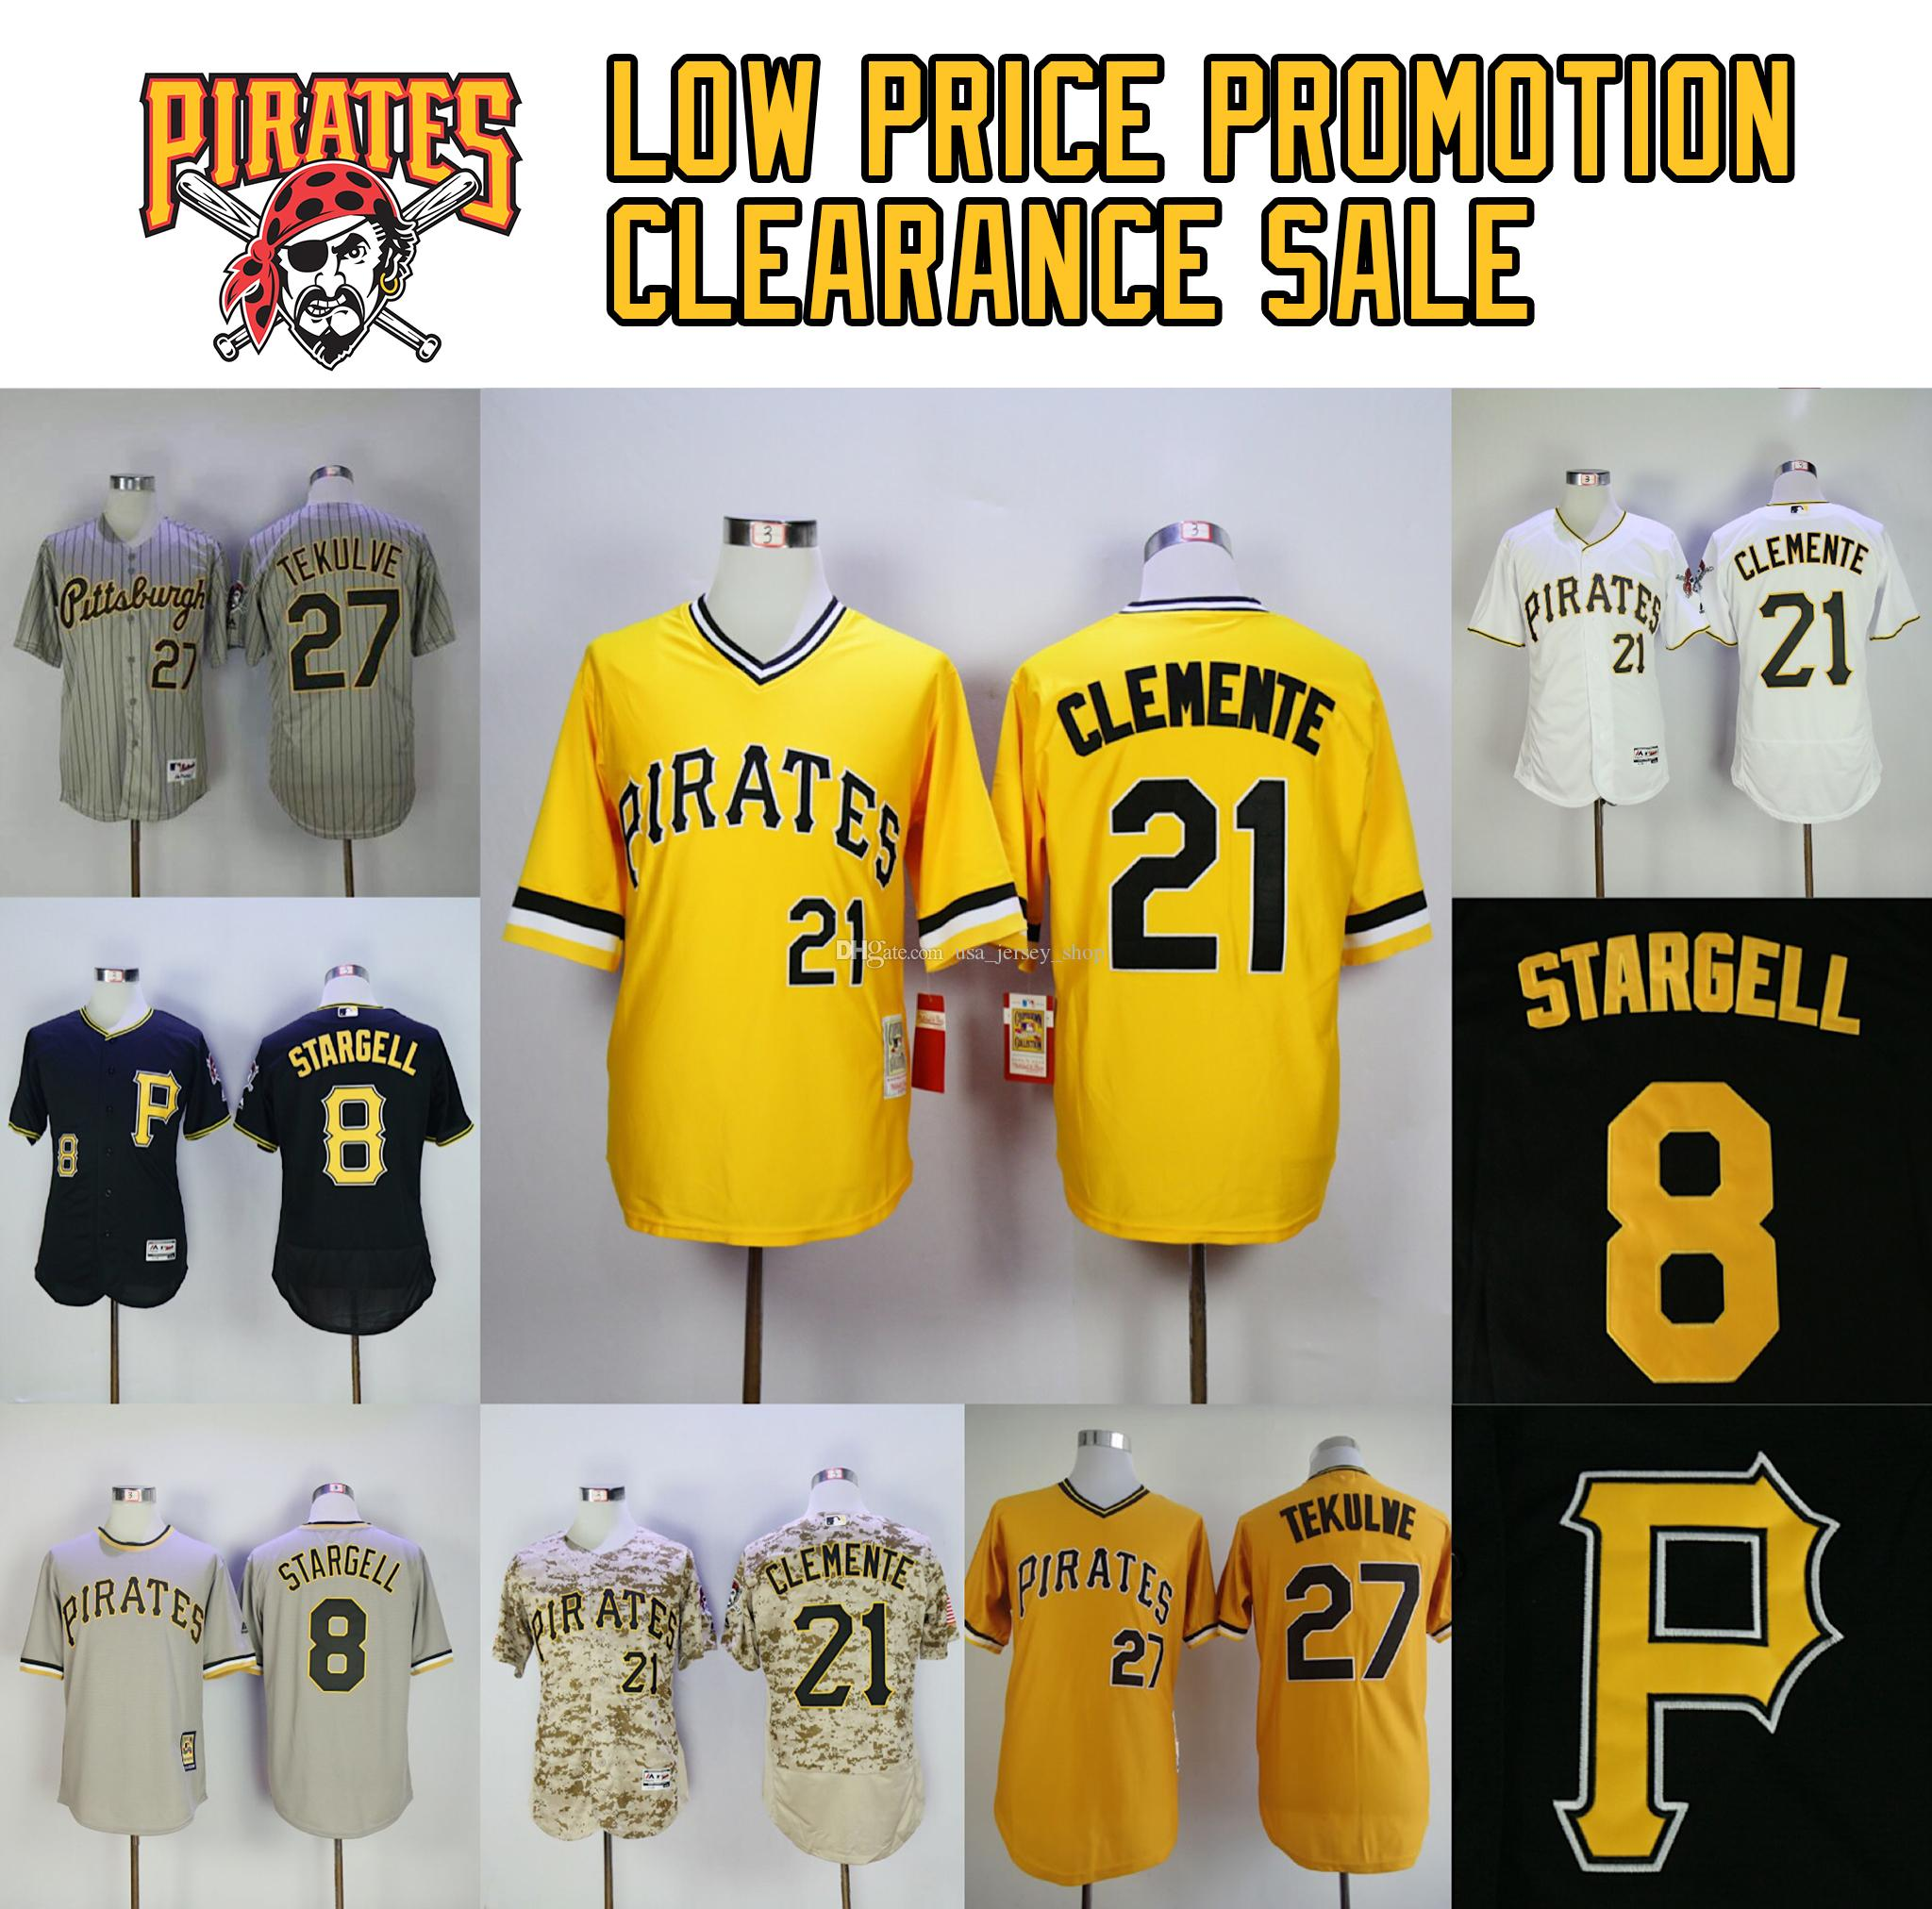 new products 0ba3e 8b9f9 Pirates Jerseys Willie Stargell Roberto Clemente Chris Archer Gregory  Polanco Jung Ho Kang Baseball Jersey Free ship Low price promotion